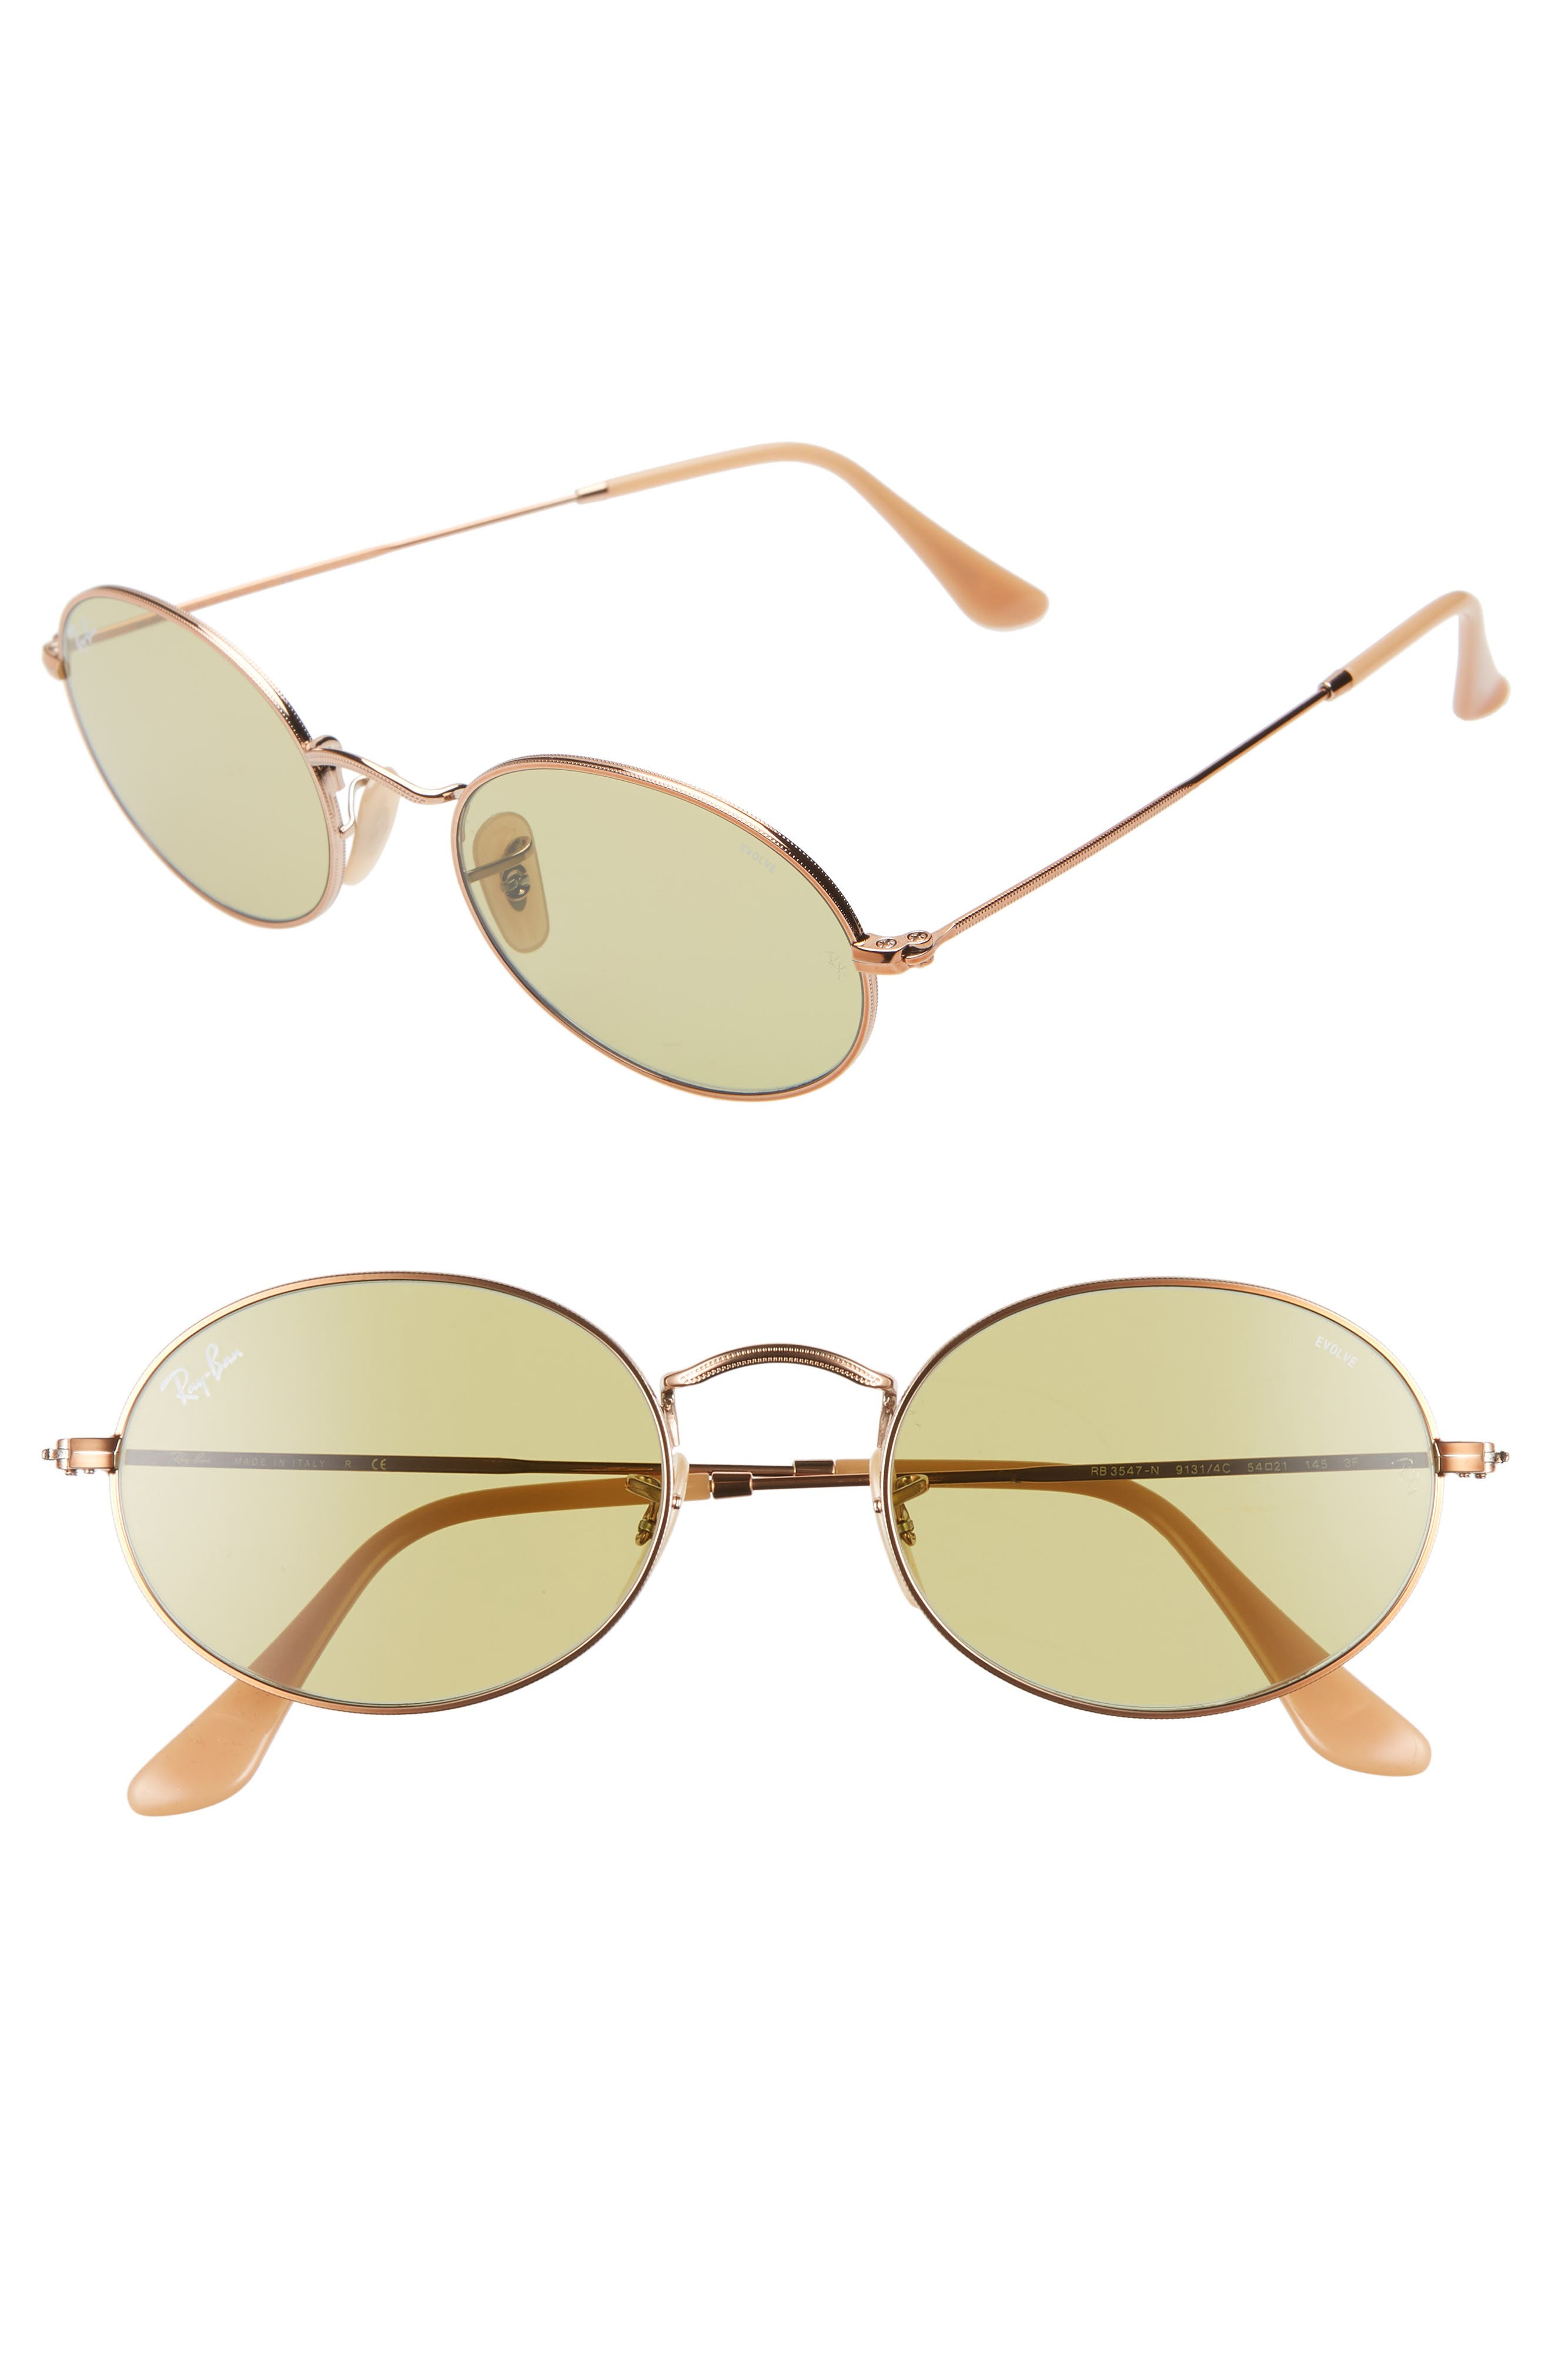 RAY-BAN Evolve 54mm Polarized Oval Sunglasses, Main, color, GOLD/ GREEN SOLID